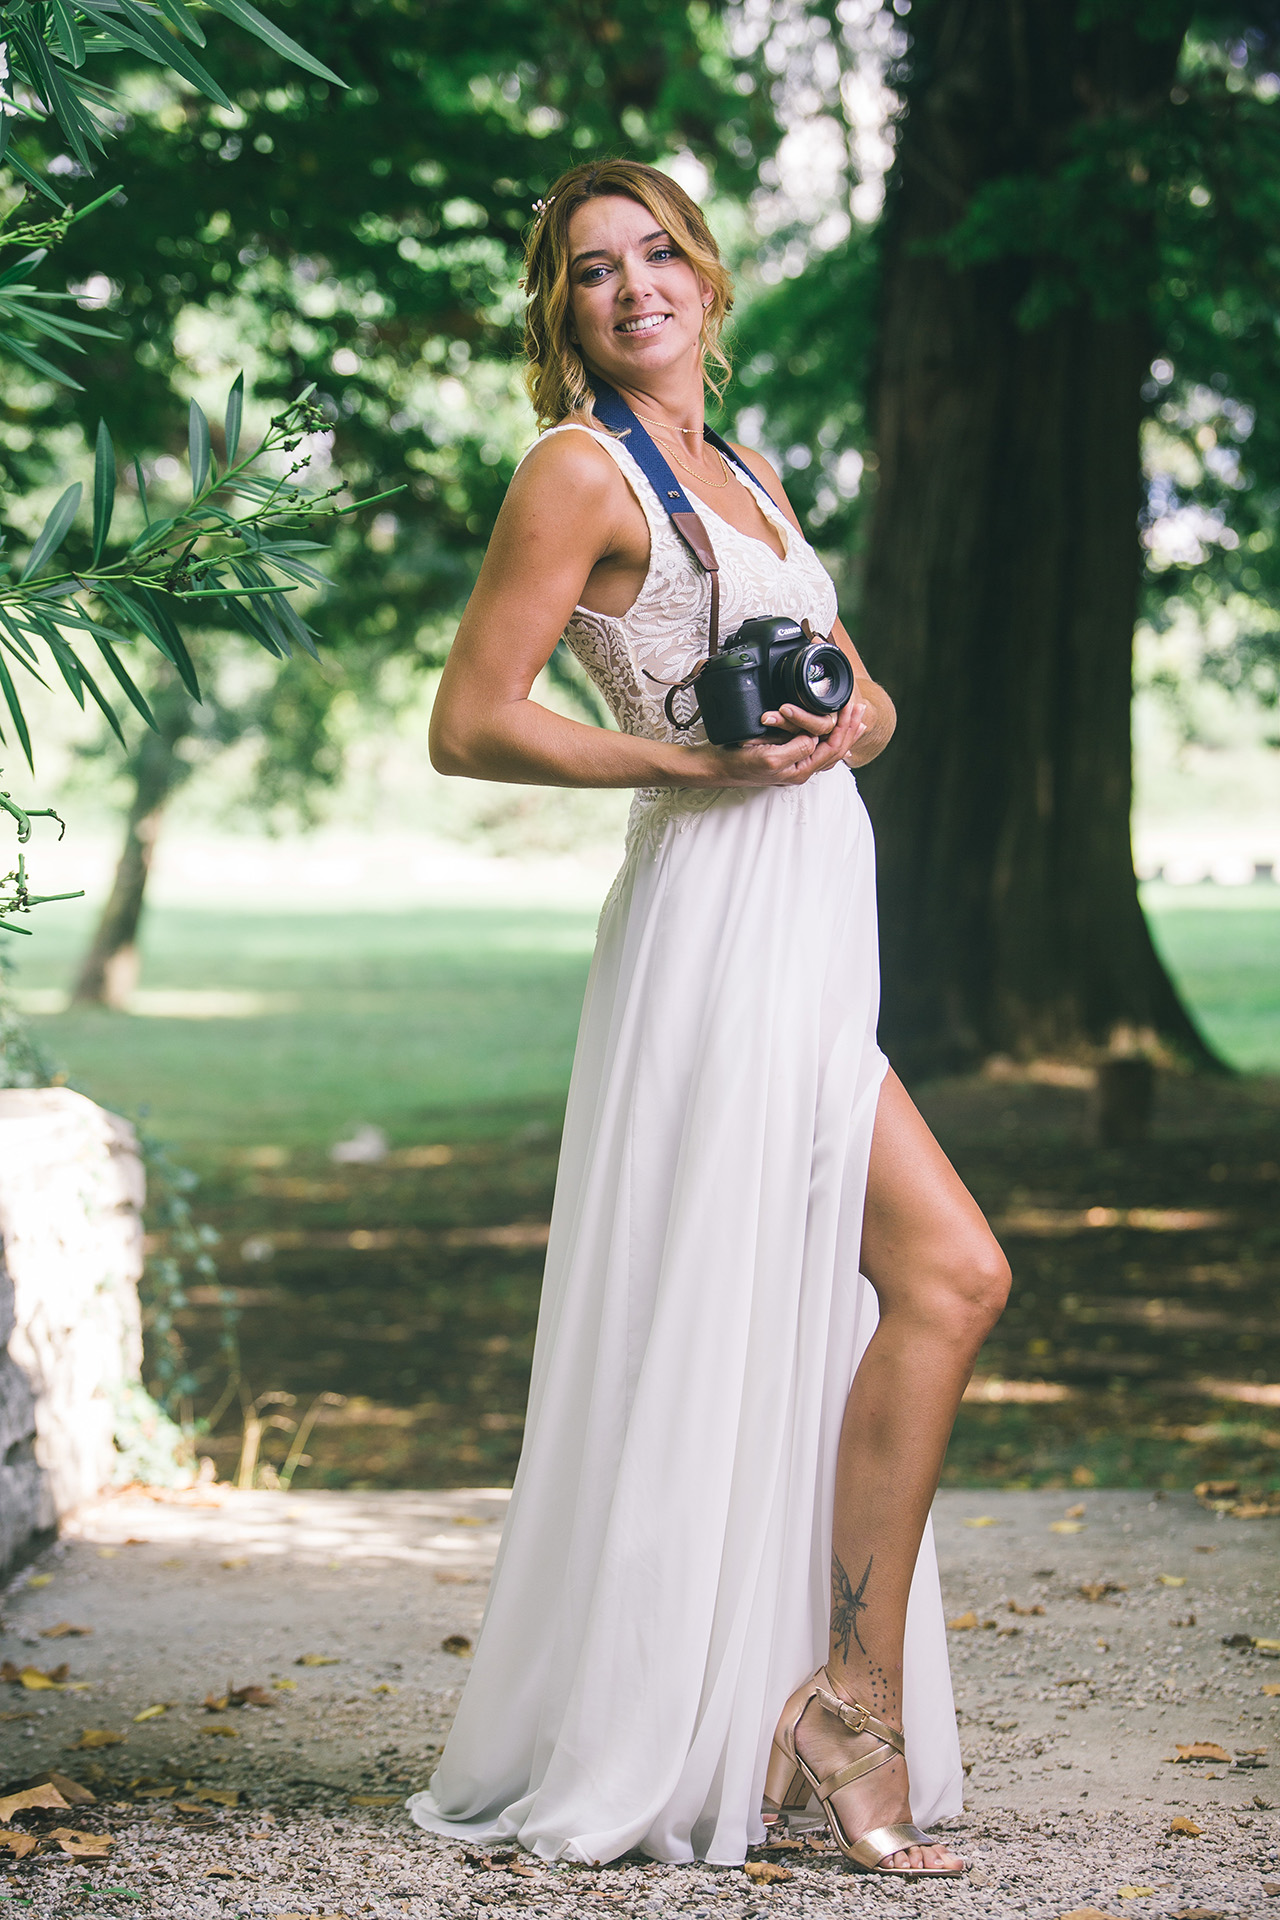 aurelie-ungaro-photographe-mariage-shooting-photo